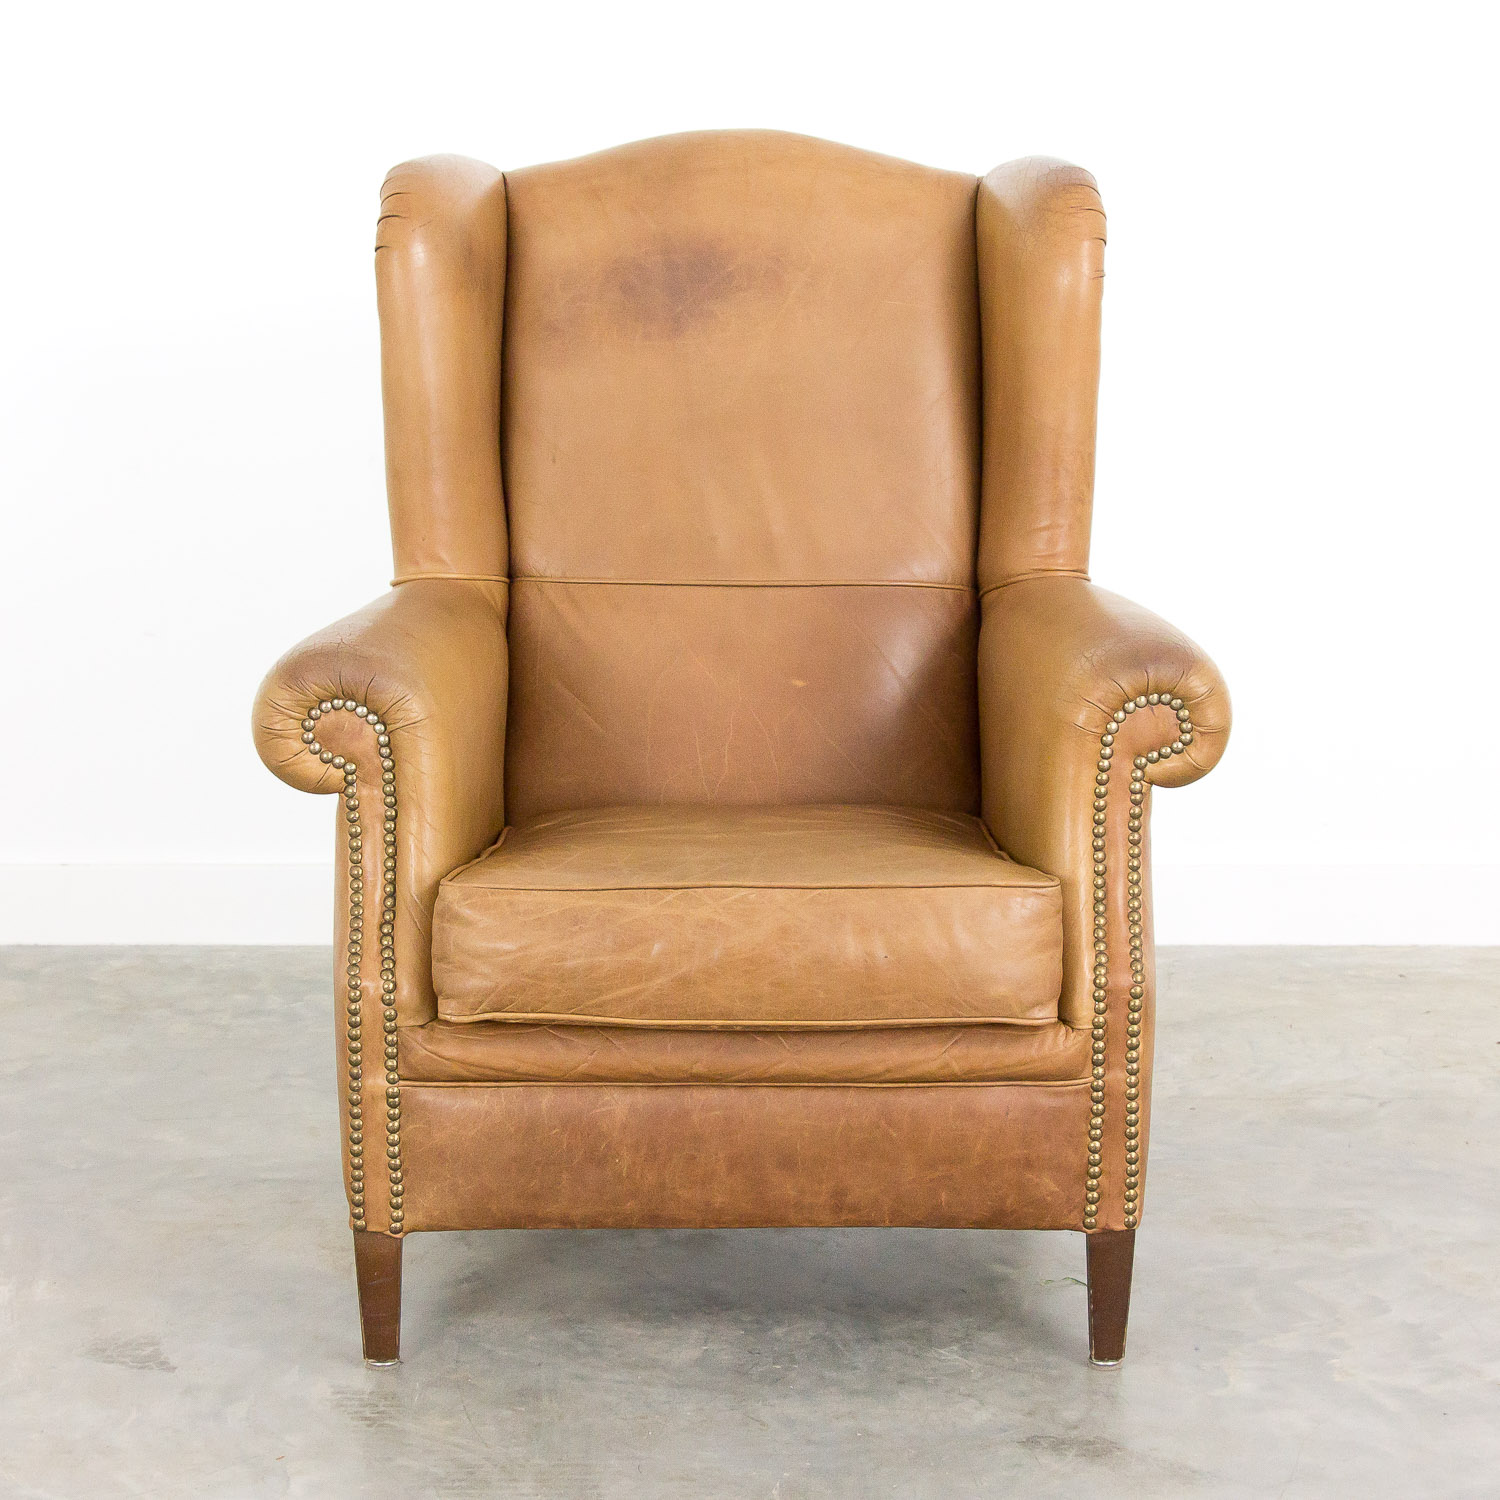 Phenomenal Vintage Leather Wingback Armchair Gmtry Best Dining Table And Chair Ideas Images Gmtryco